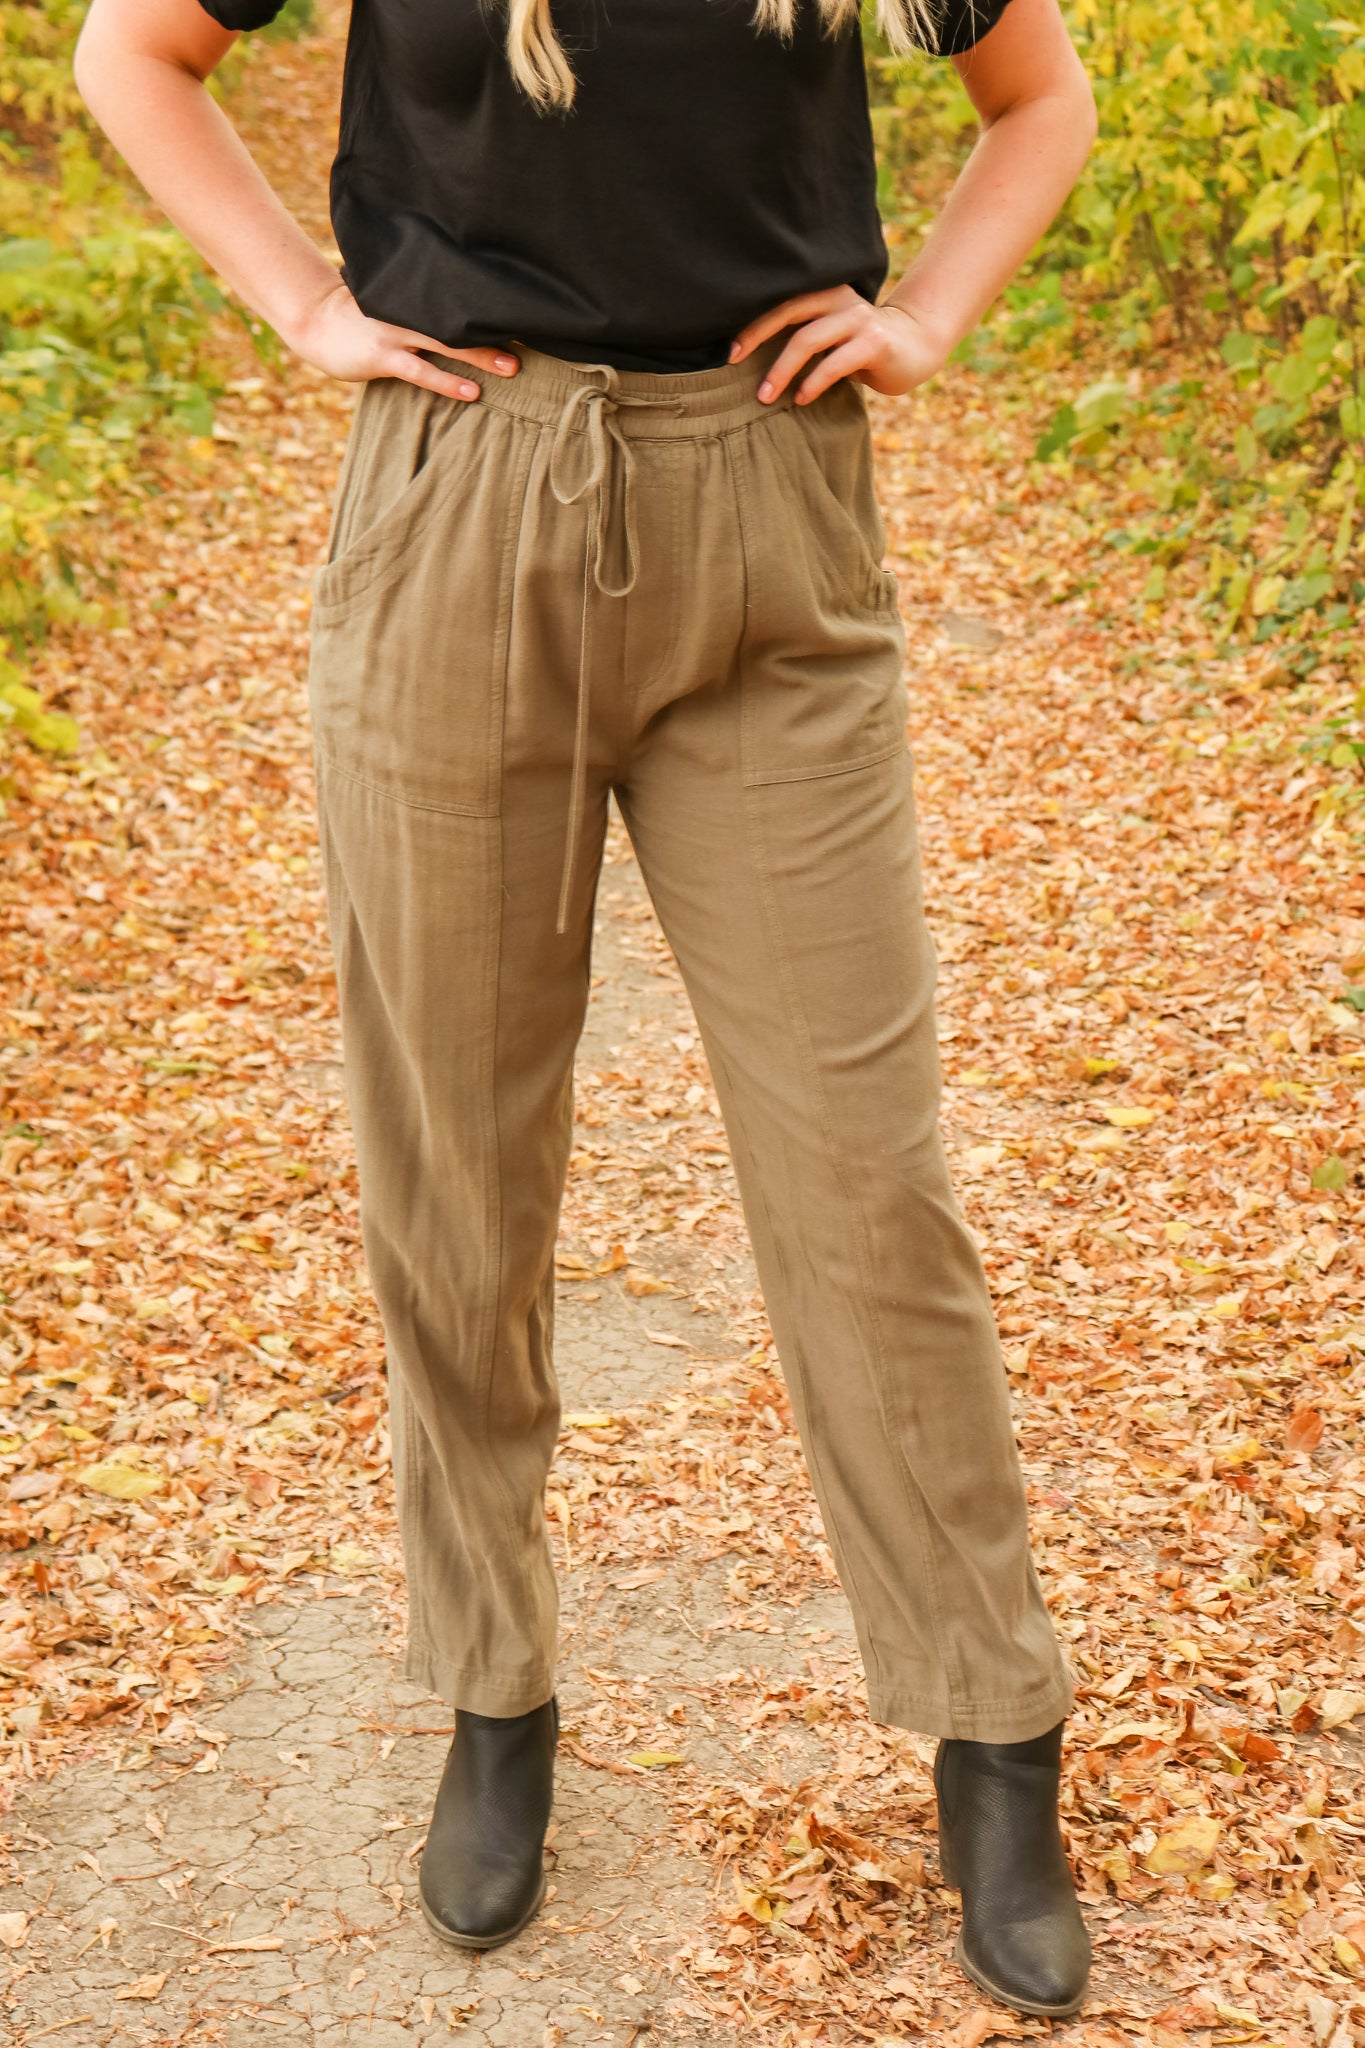 Olive These Pants 1 - JQ Clothing Co. - Oakes ND